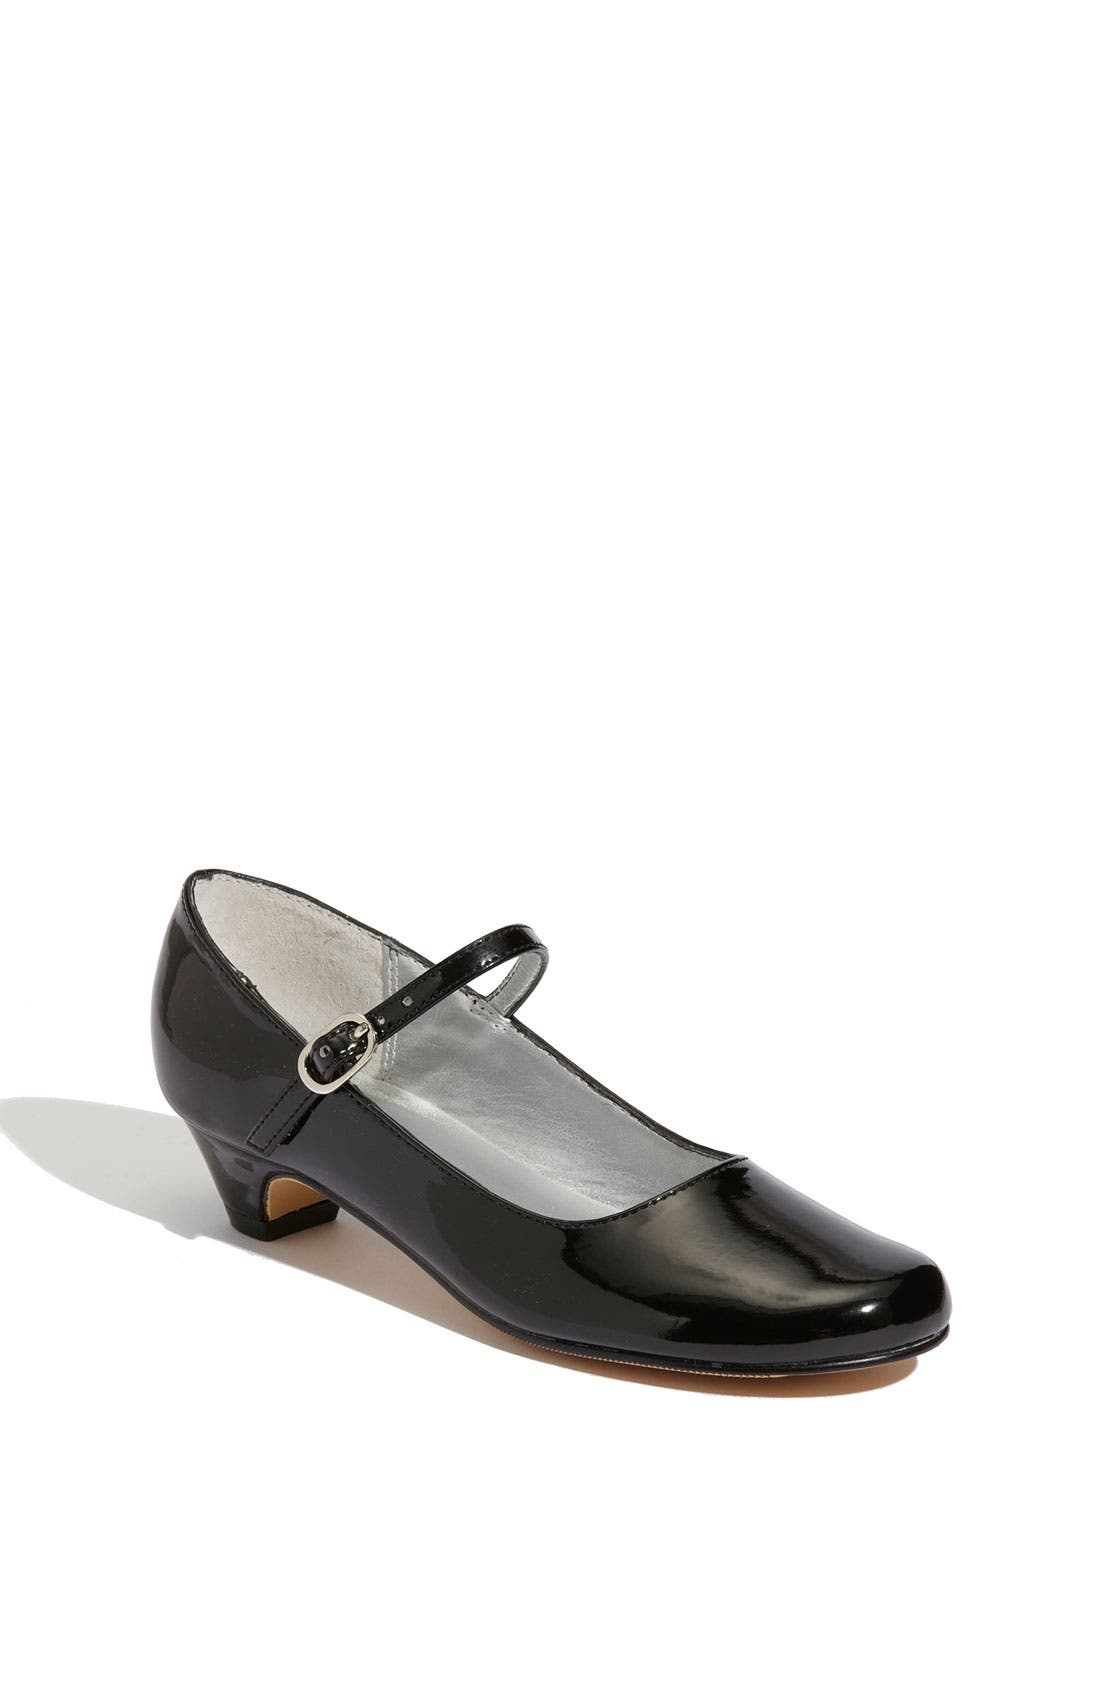 'Seeley' Mary Jane,                             Main thumbnail 1, color,                             Black Patent